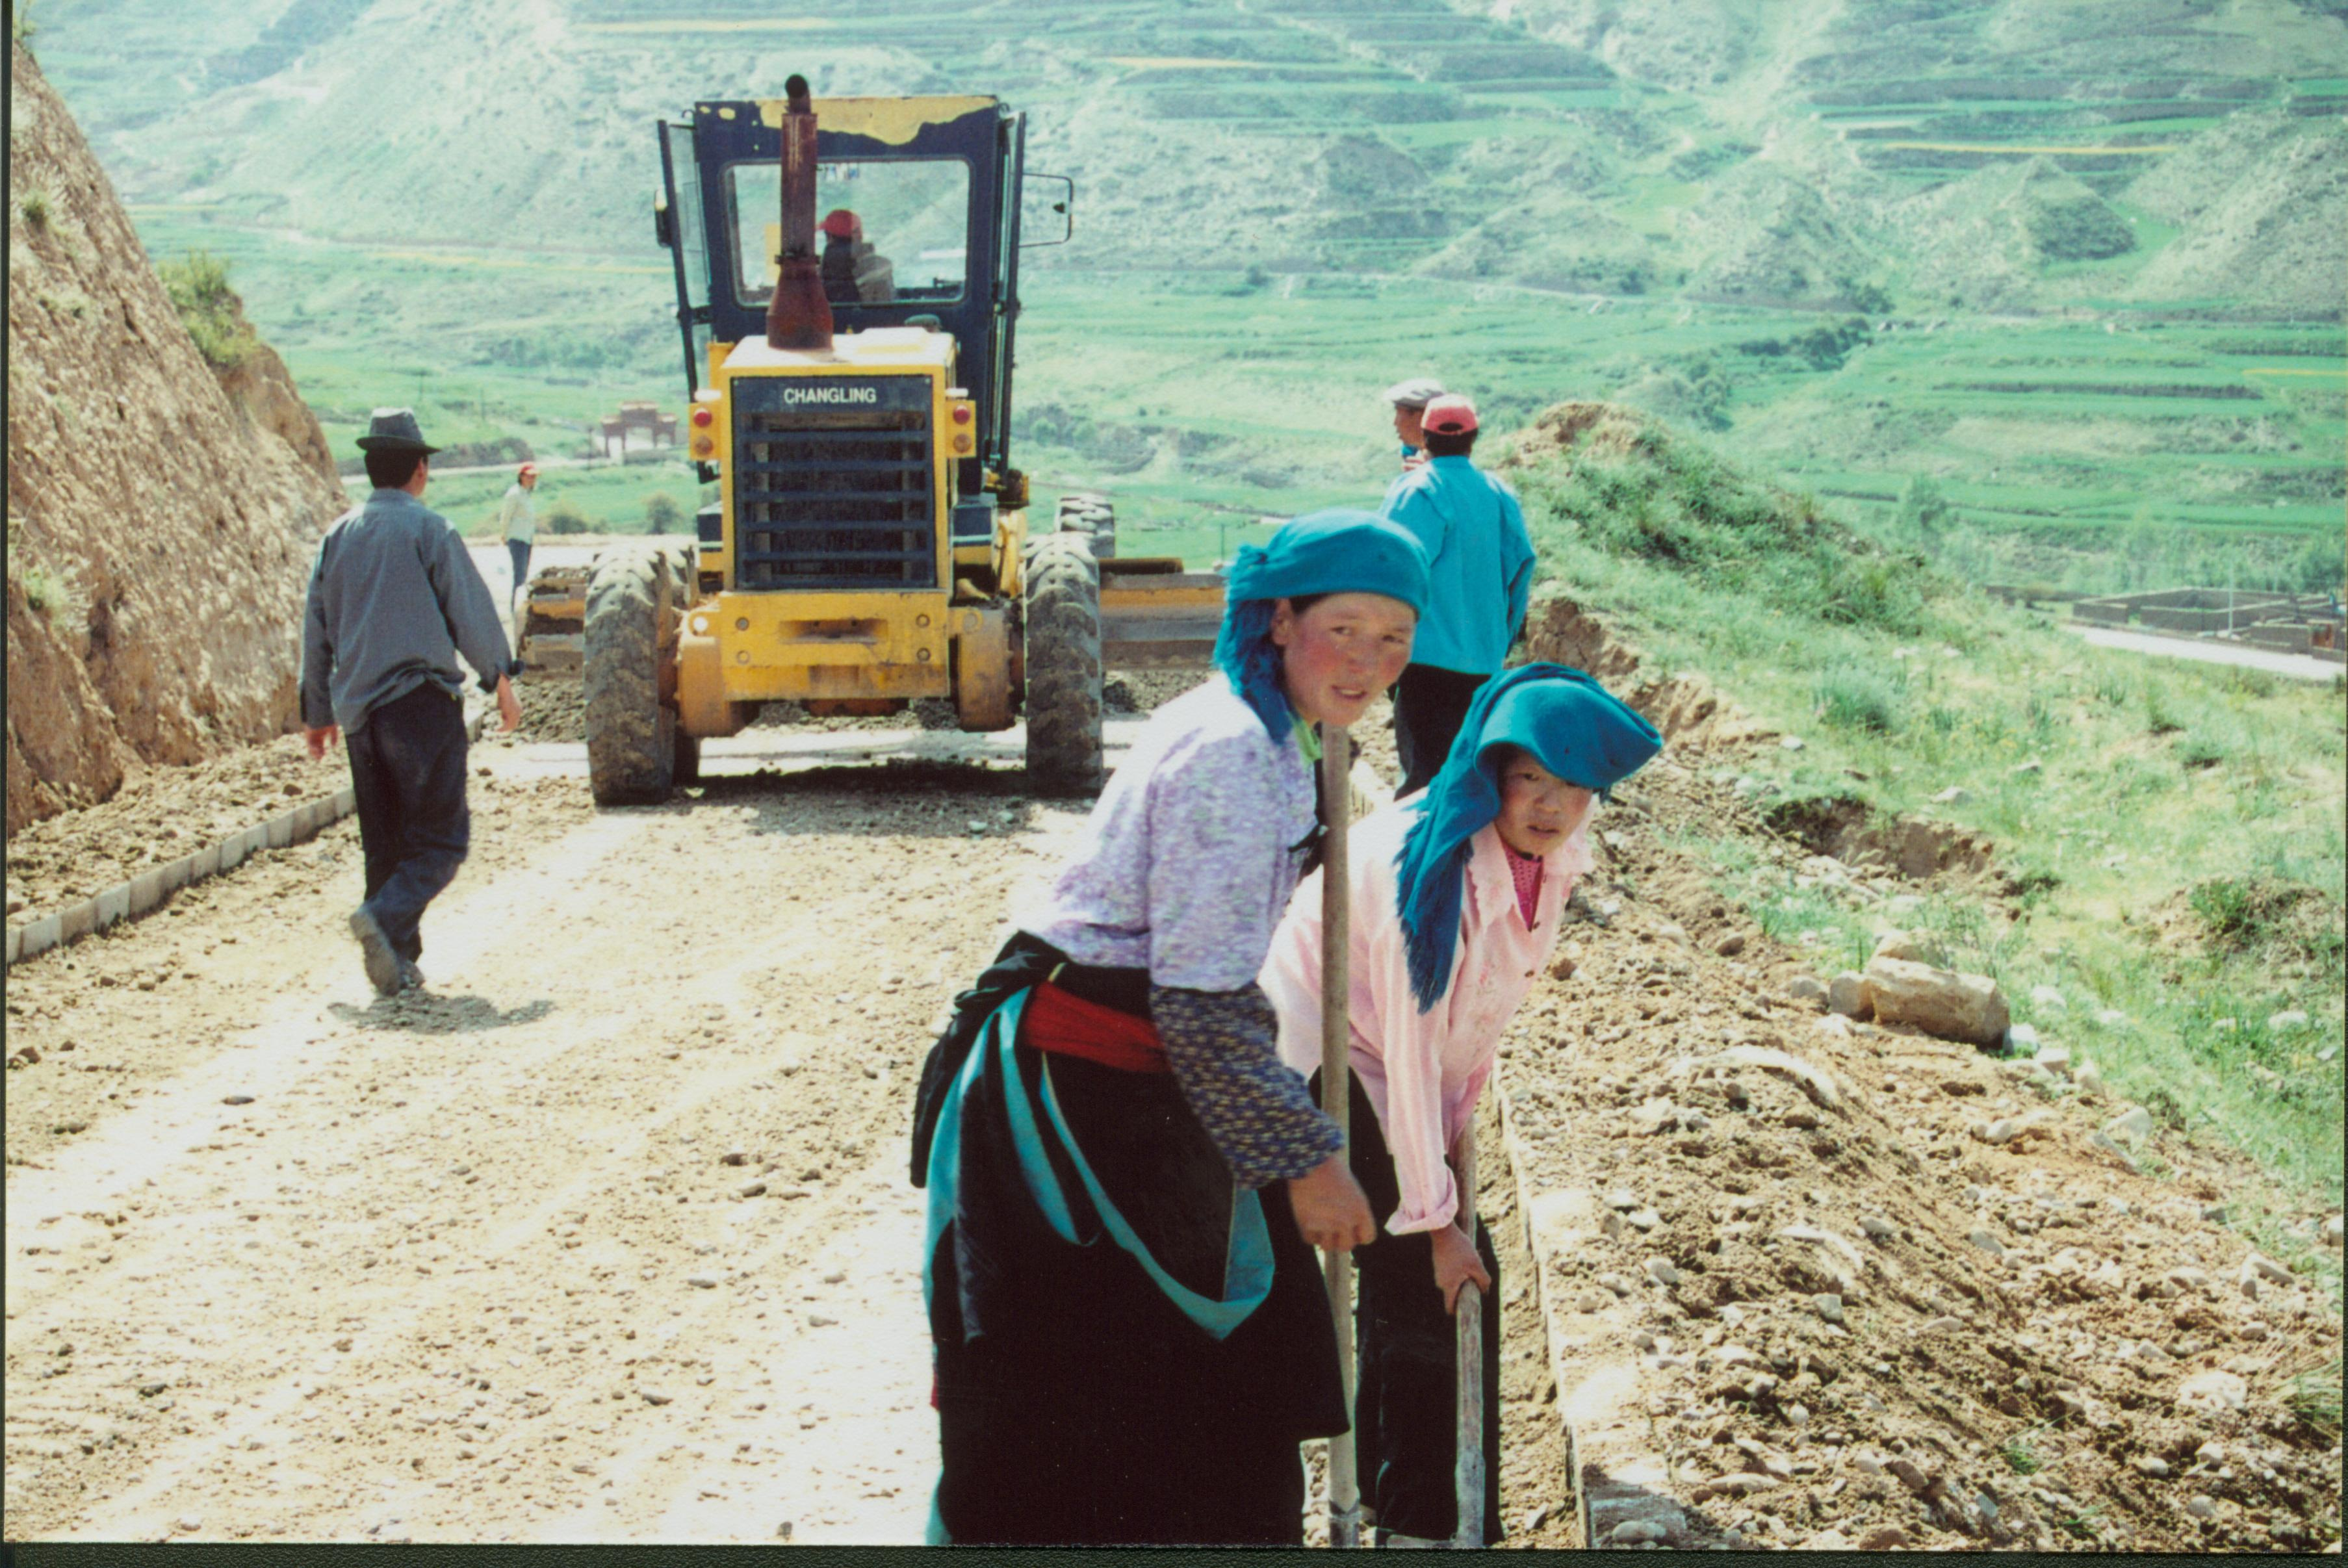 Tibetan women working on a Chinese construction site in Qinghai